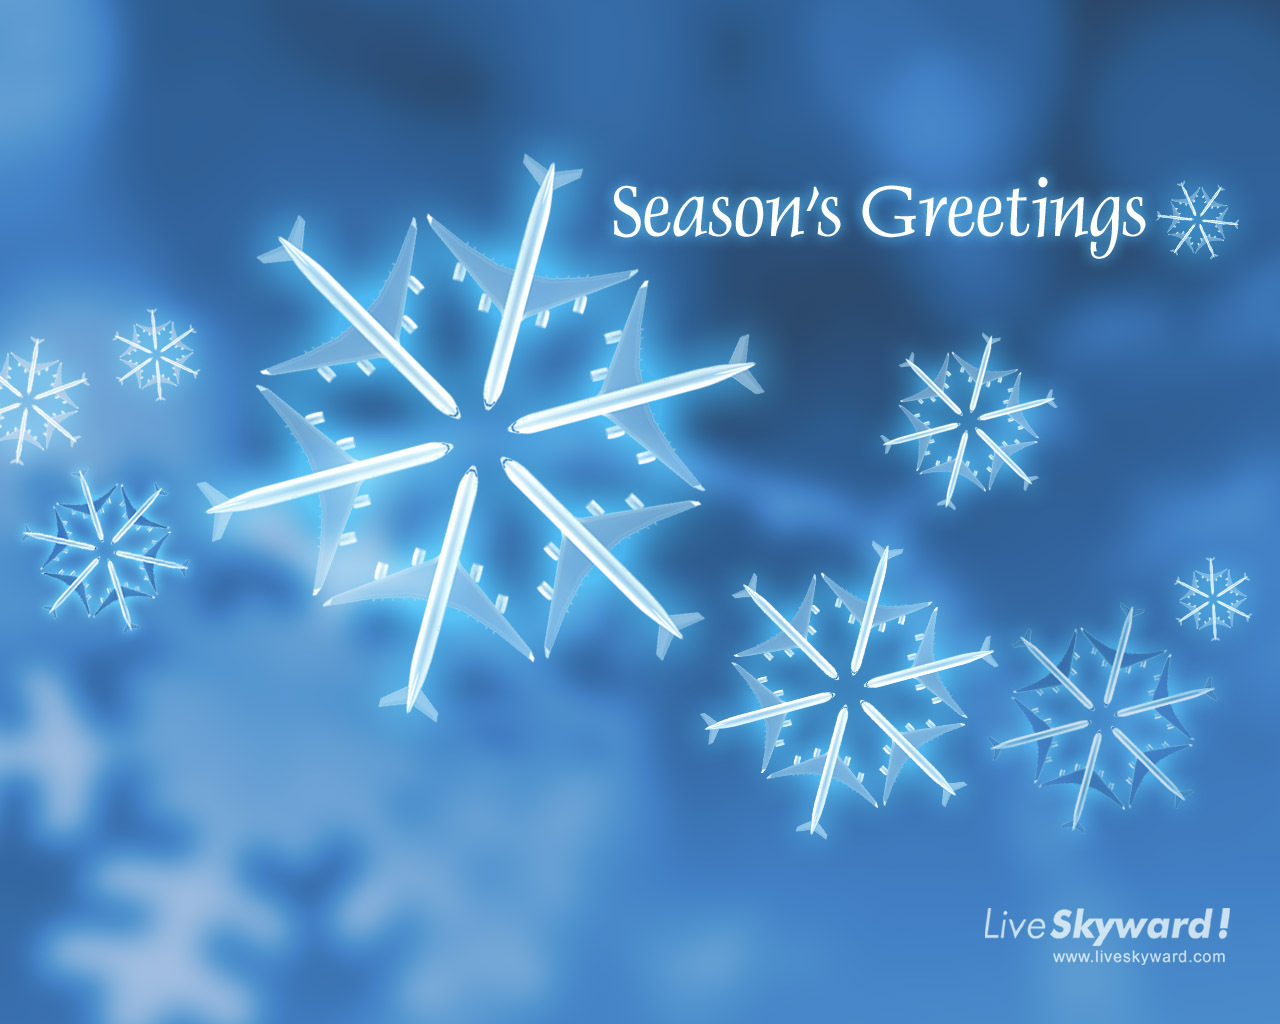 All seasons greetings backgrounds images pics comments facebook some results for seasons greetings m4hsunfo